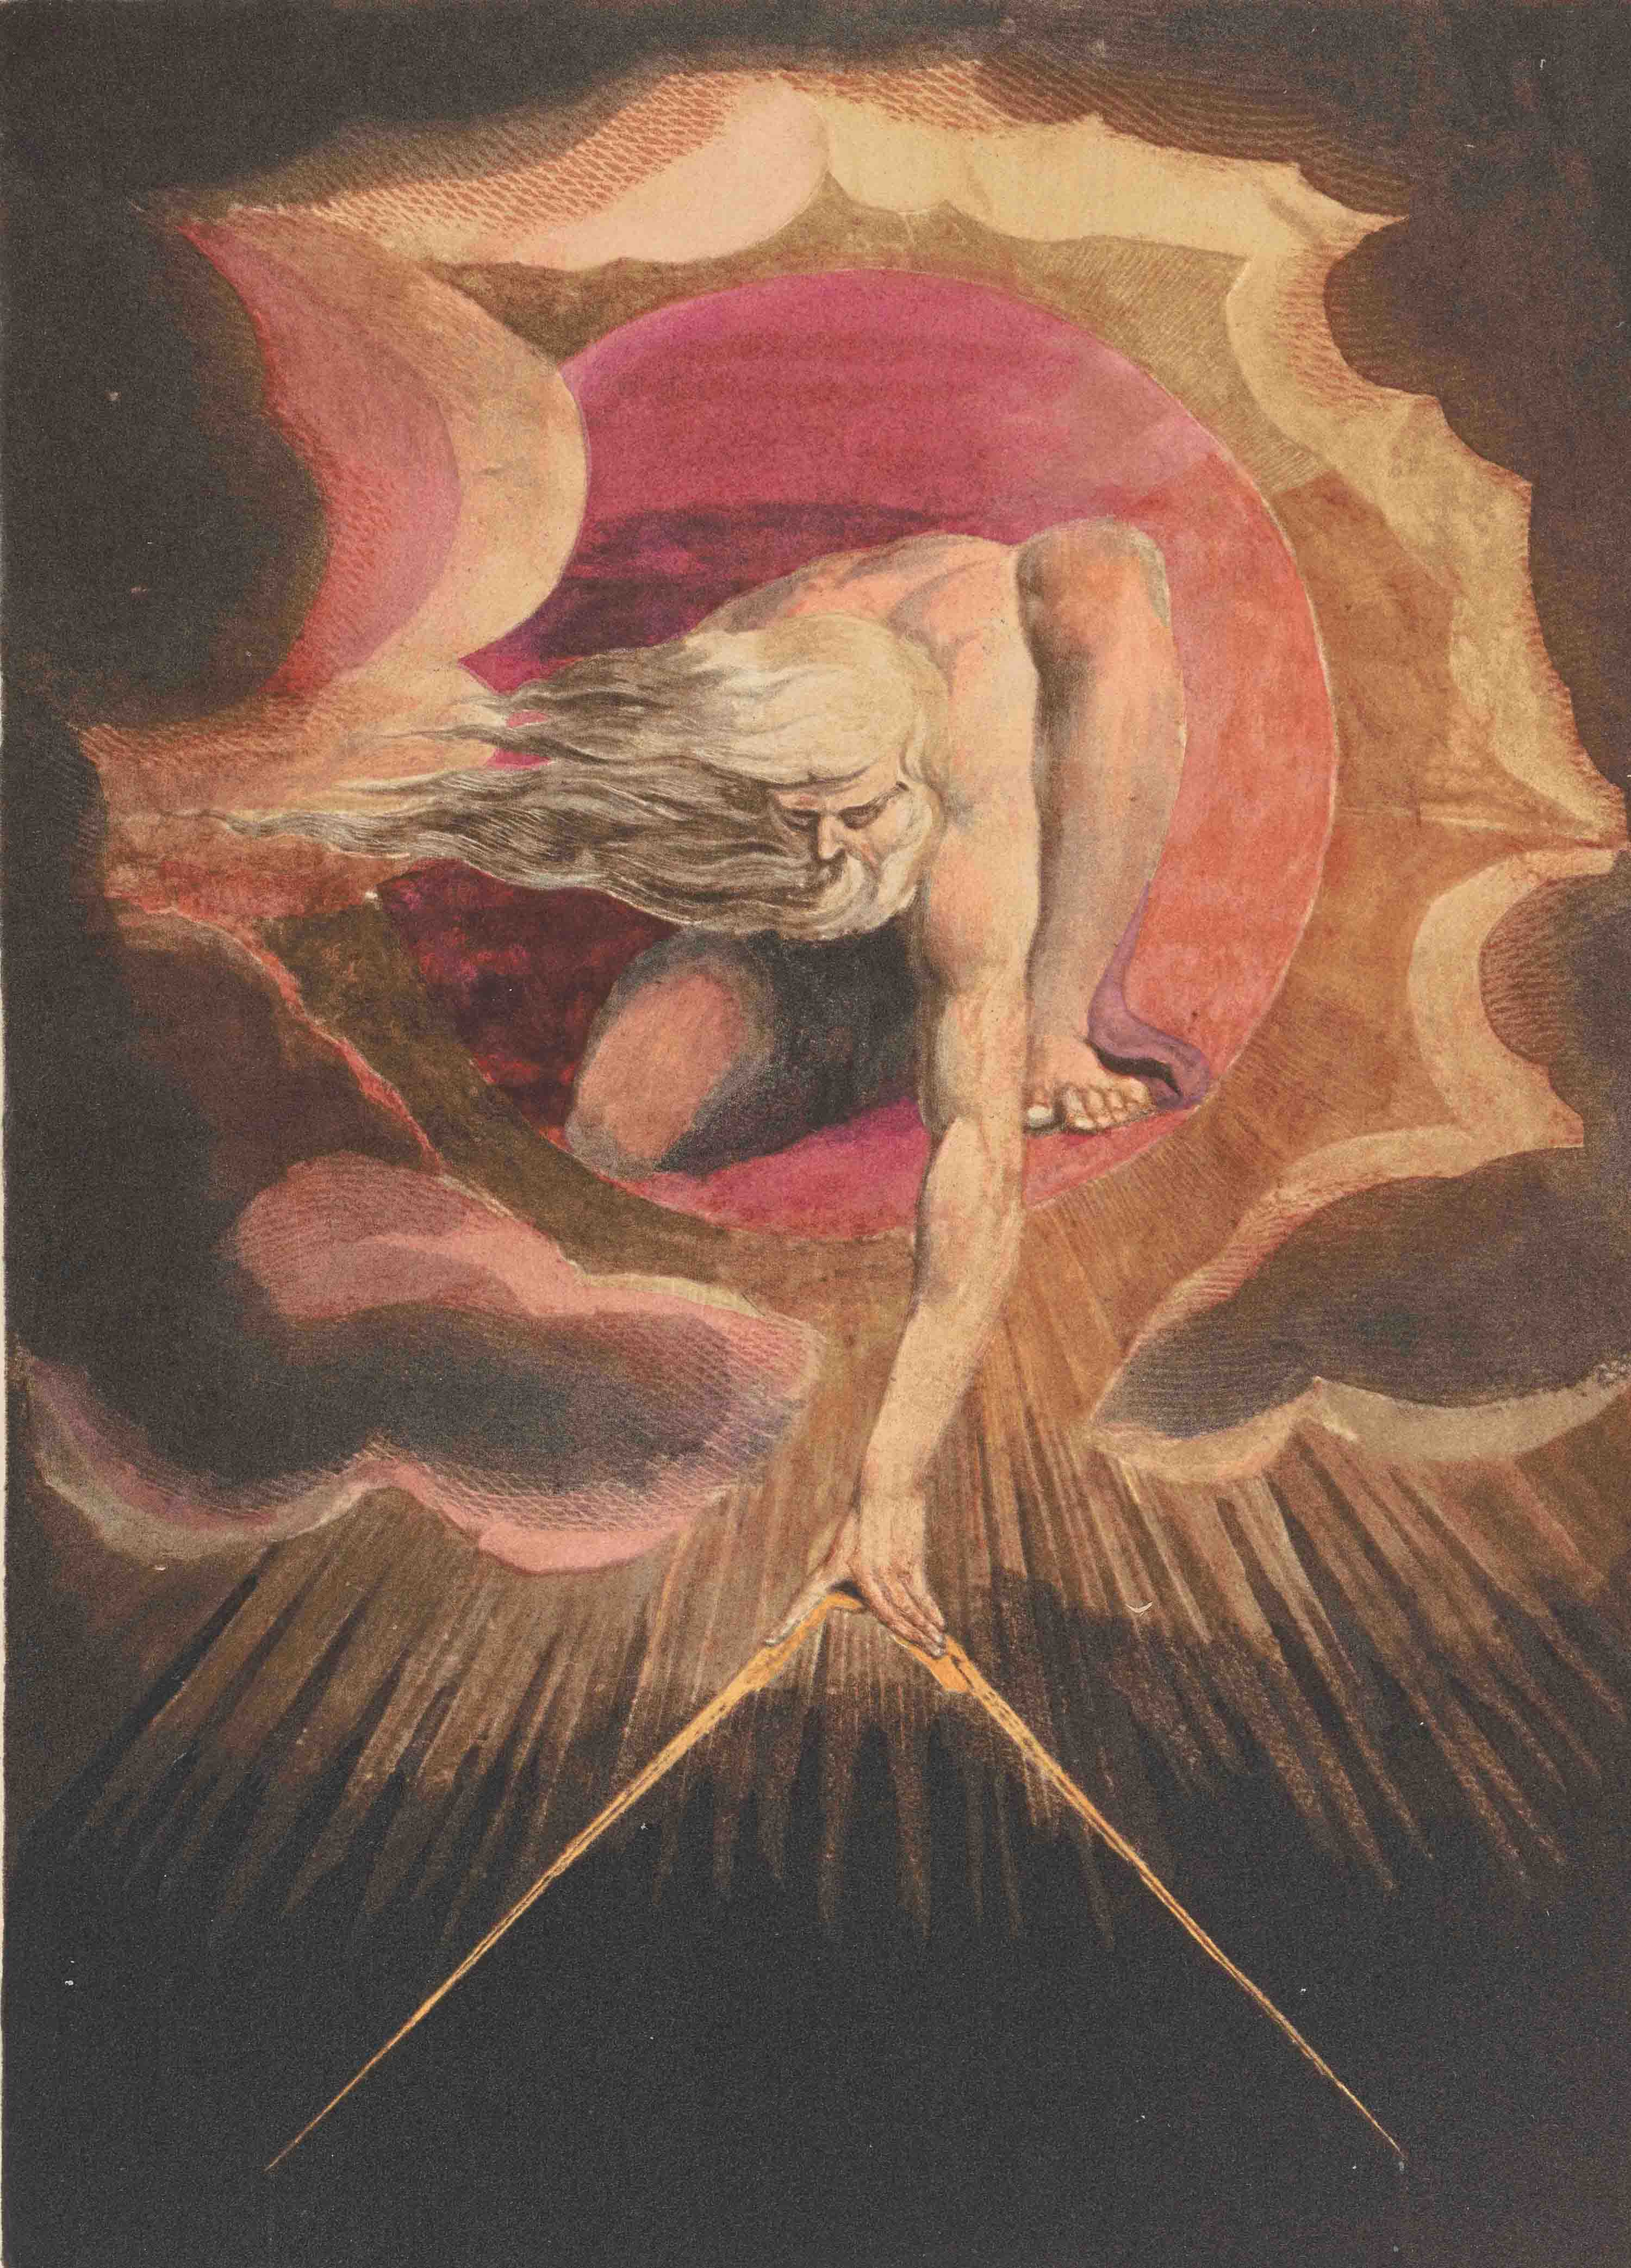 Frontispiece to William Blake's illuminated book, Europe: A Prophecy (1794), reproduced from the 1969 facsimile edition printed by the Trianon Press for the William Blake Trust.